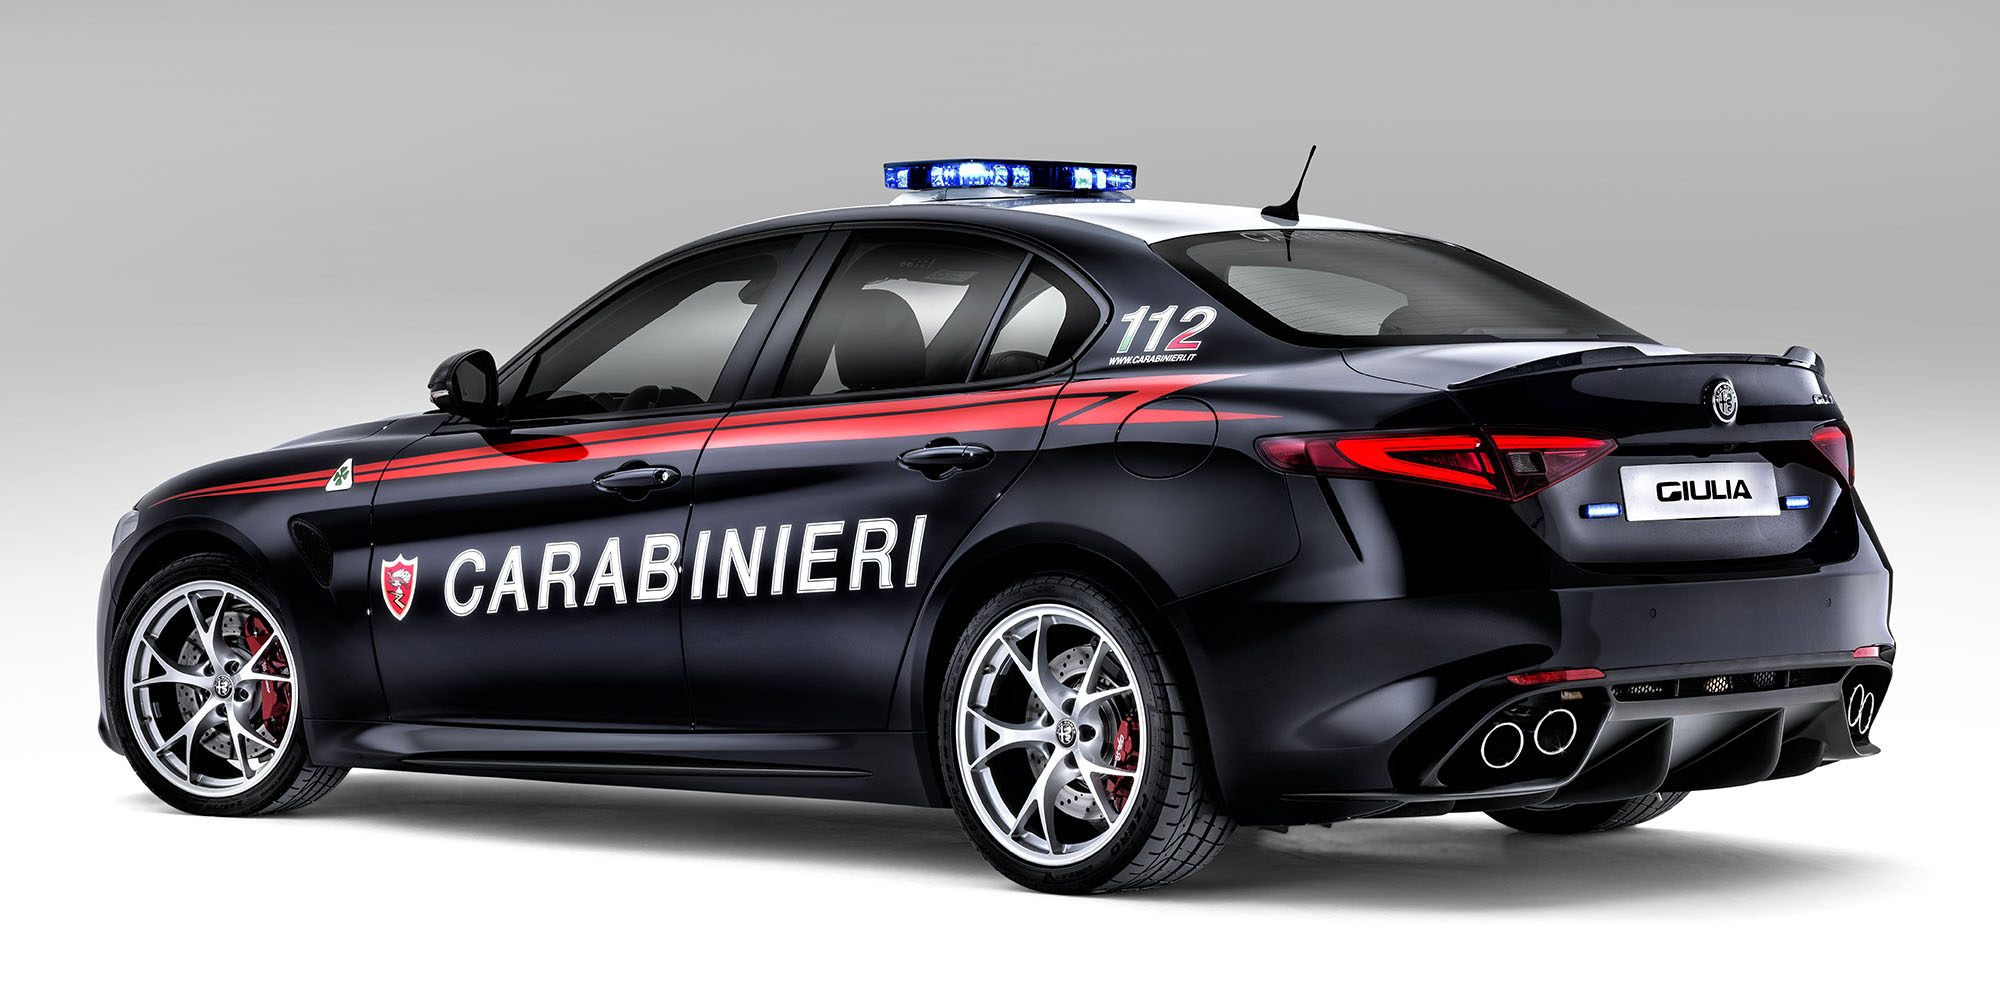 2016 alfa romeo giulia quadrifoglio joins carabinieri fleet photos 1 of 7. Black Bedroom Furniture Sets. Home Design Ideas